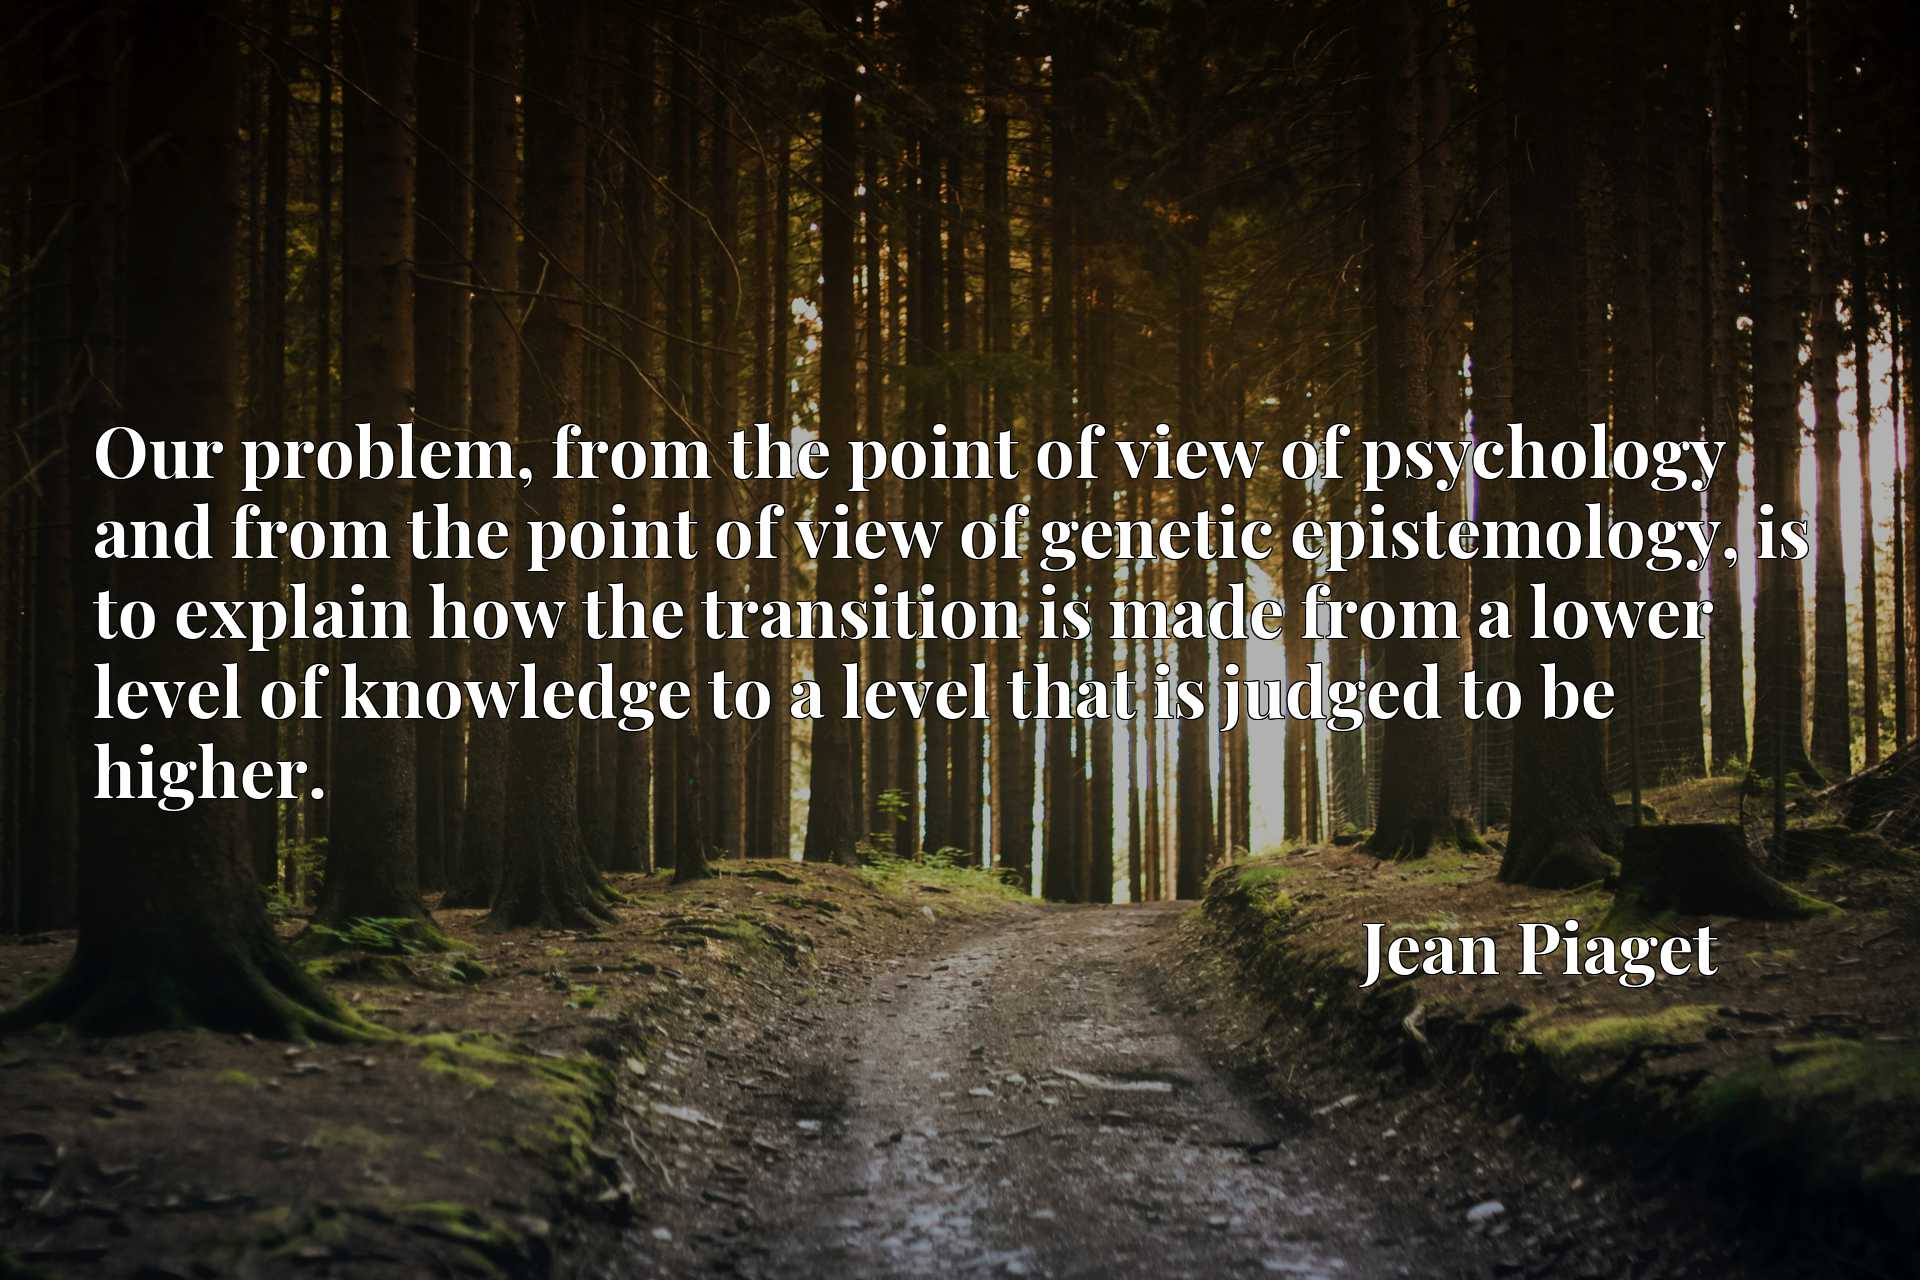 Quote Picture :Our problem, from the point of view of psychology and from the point of view of genetic epistemology, is to explain how the transition is made from a lower level of knowledge to a level that is judged to be higher.